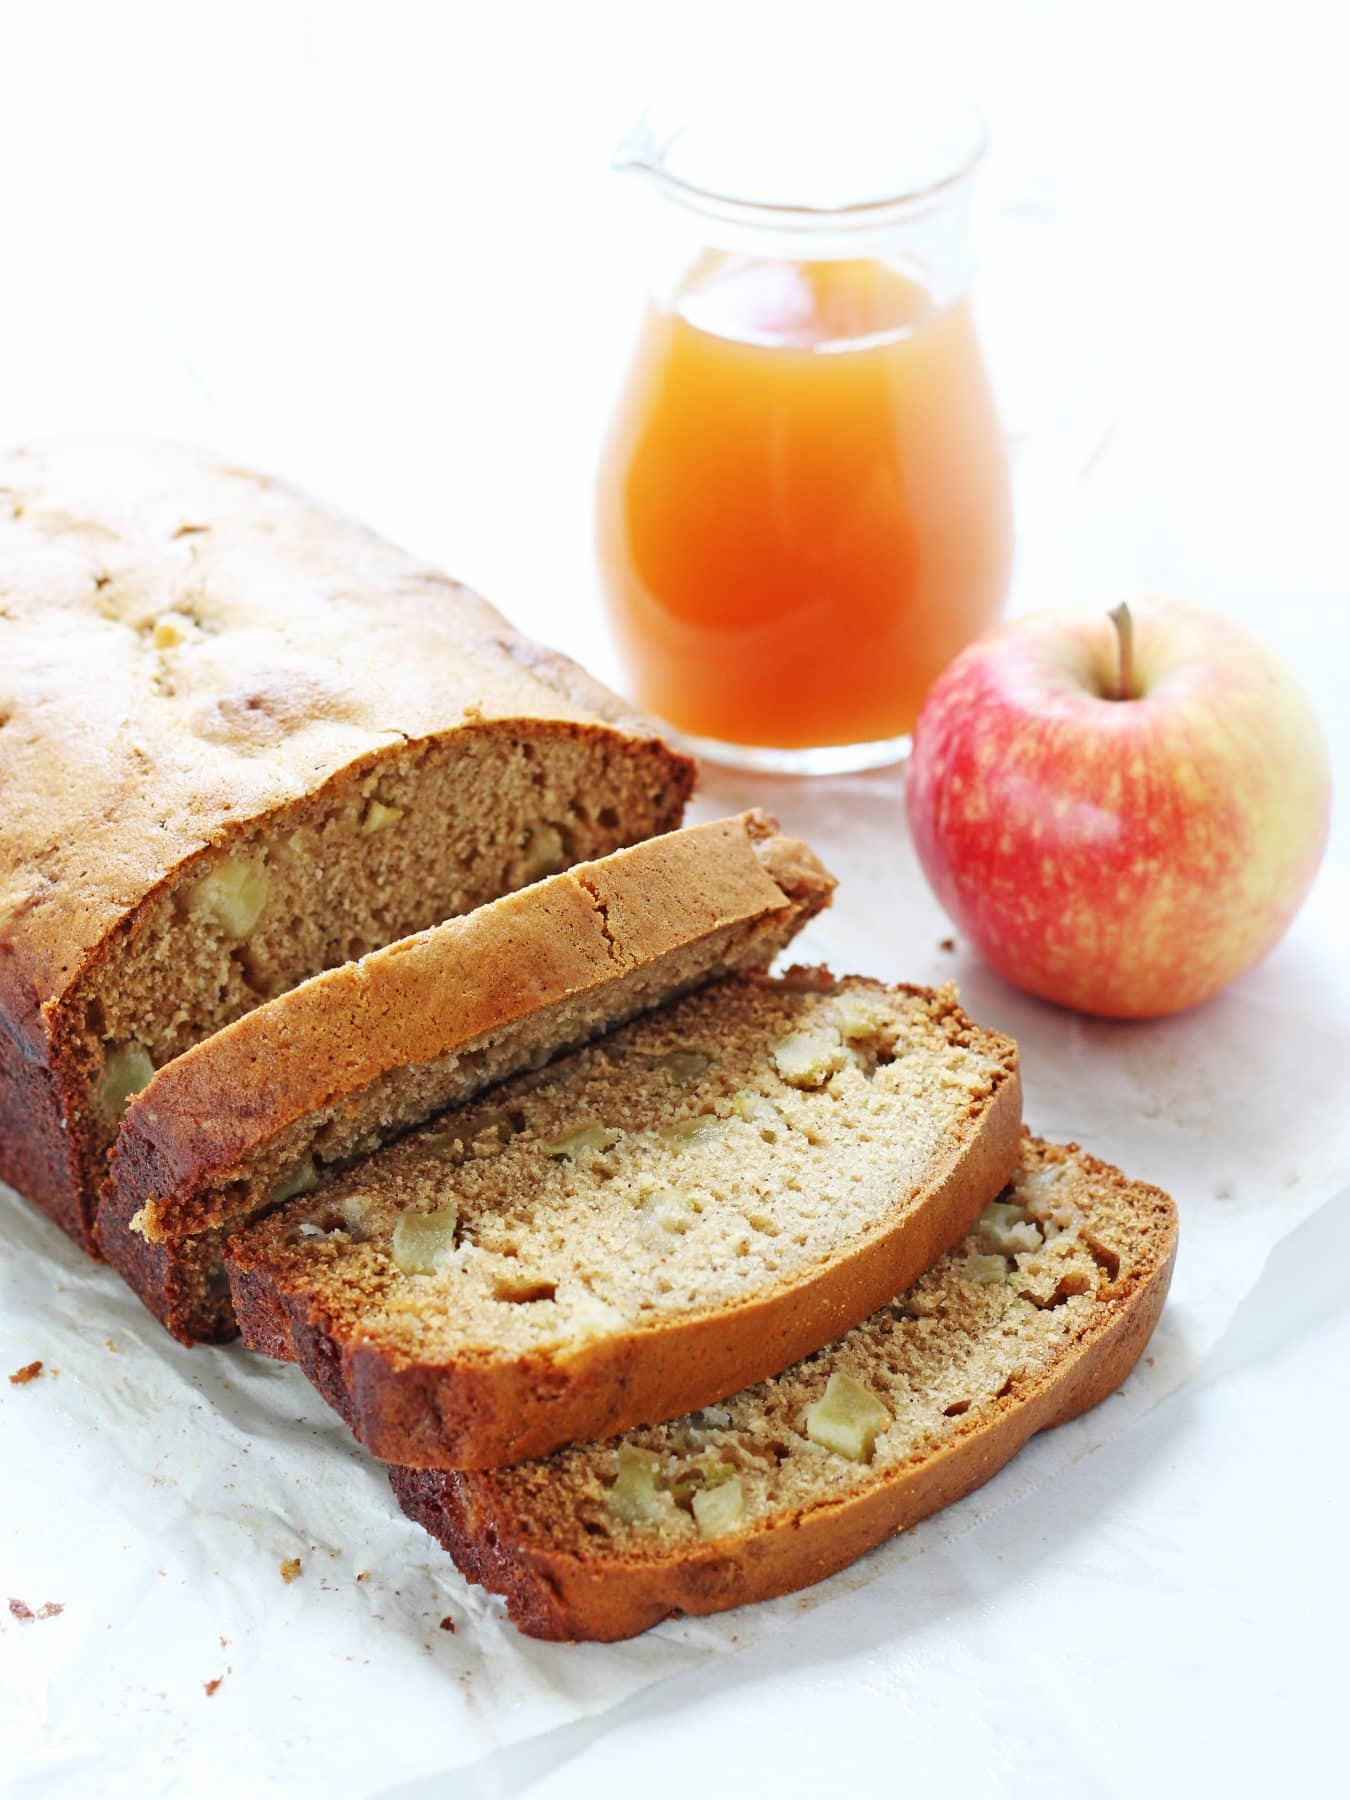 Apple Cider Bread 8.2016